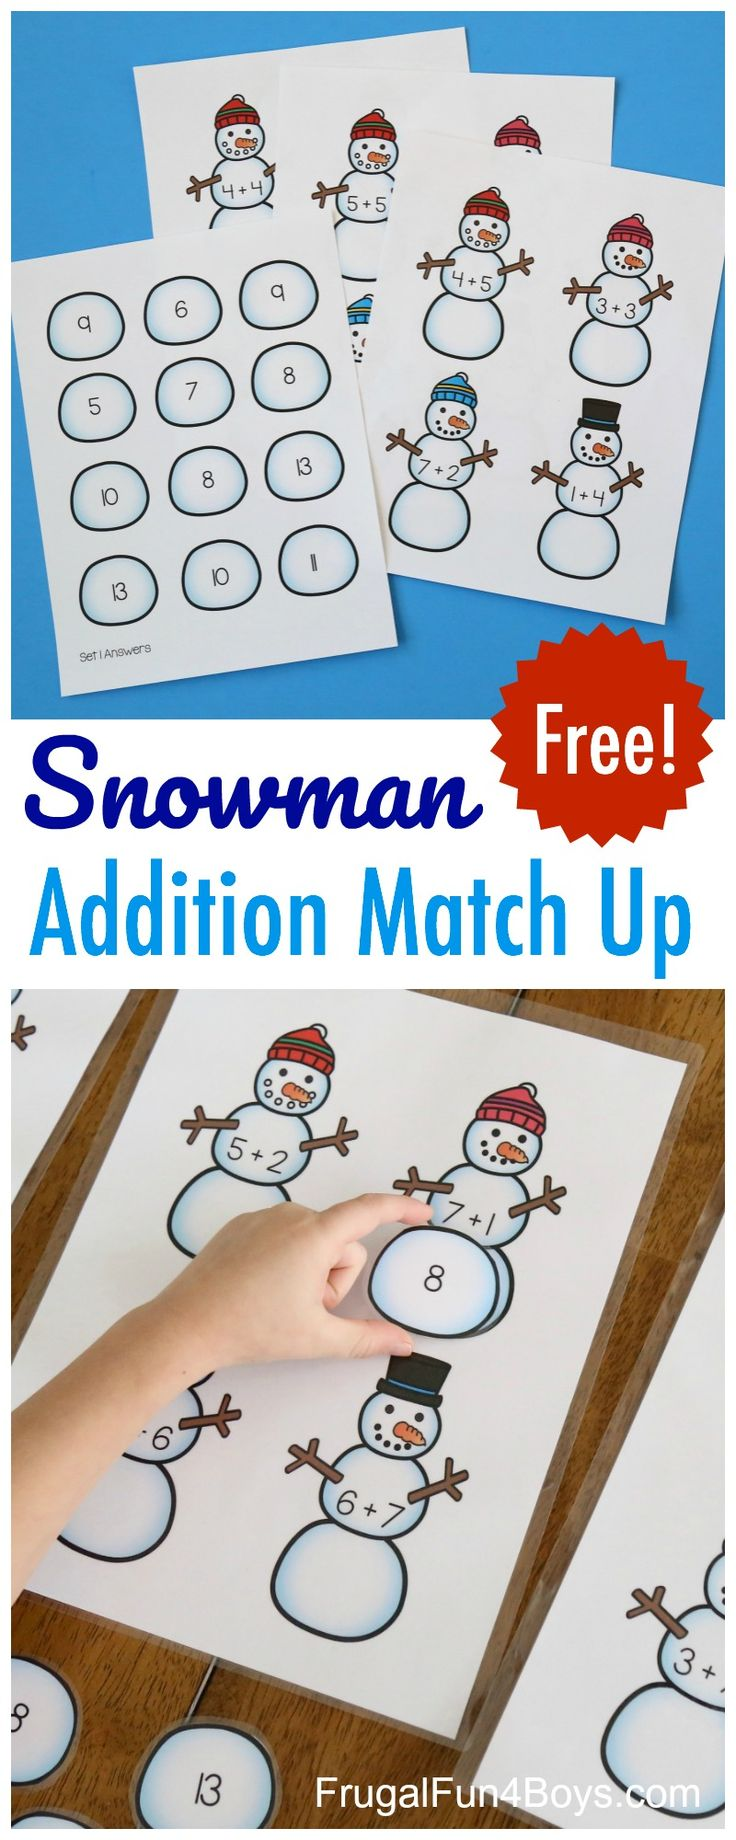 Addition Fact Practice for Kids - Printable Snowman Addition Match-Up Game #math #firstgrade